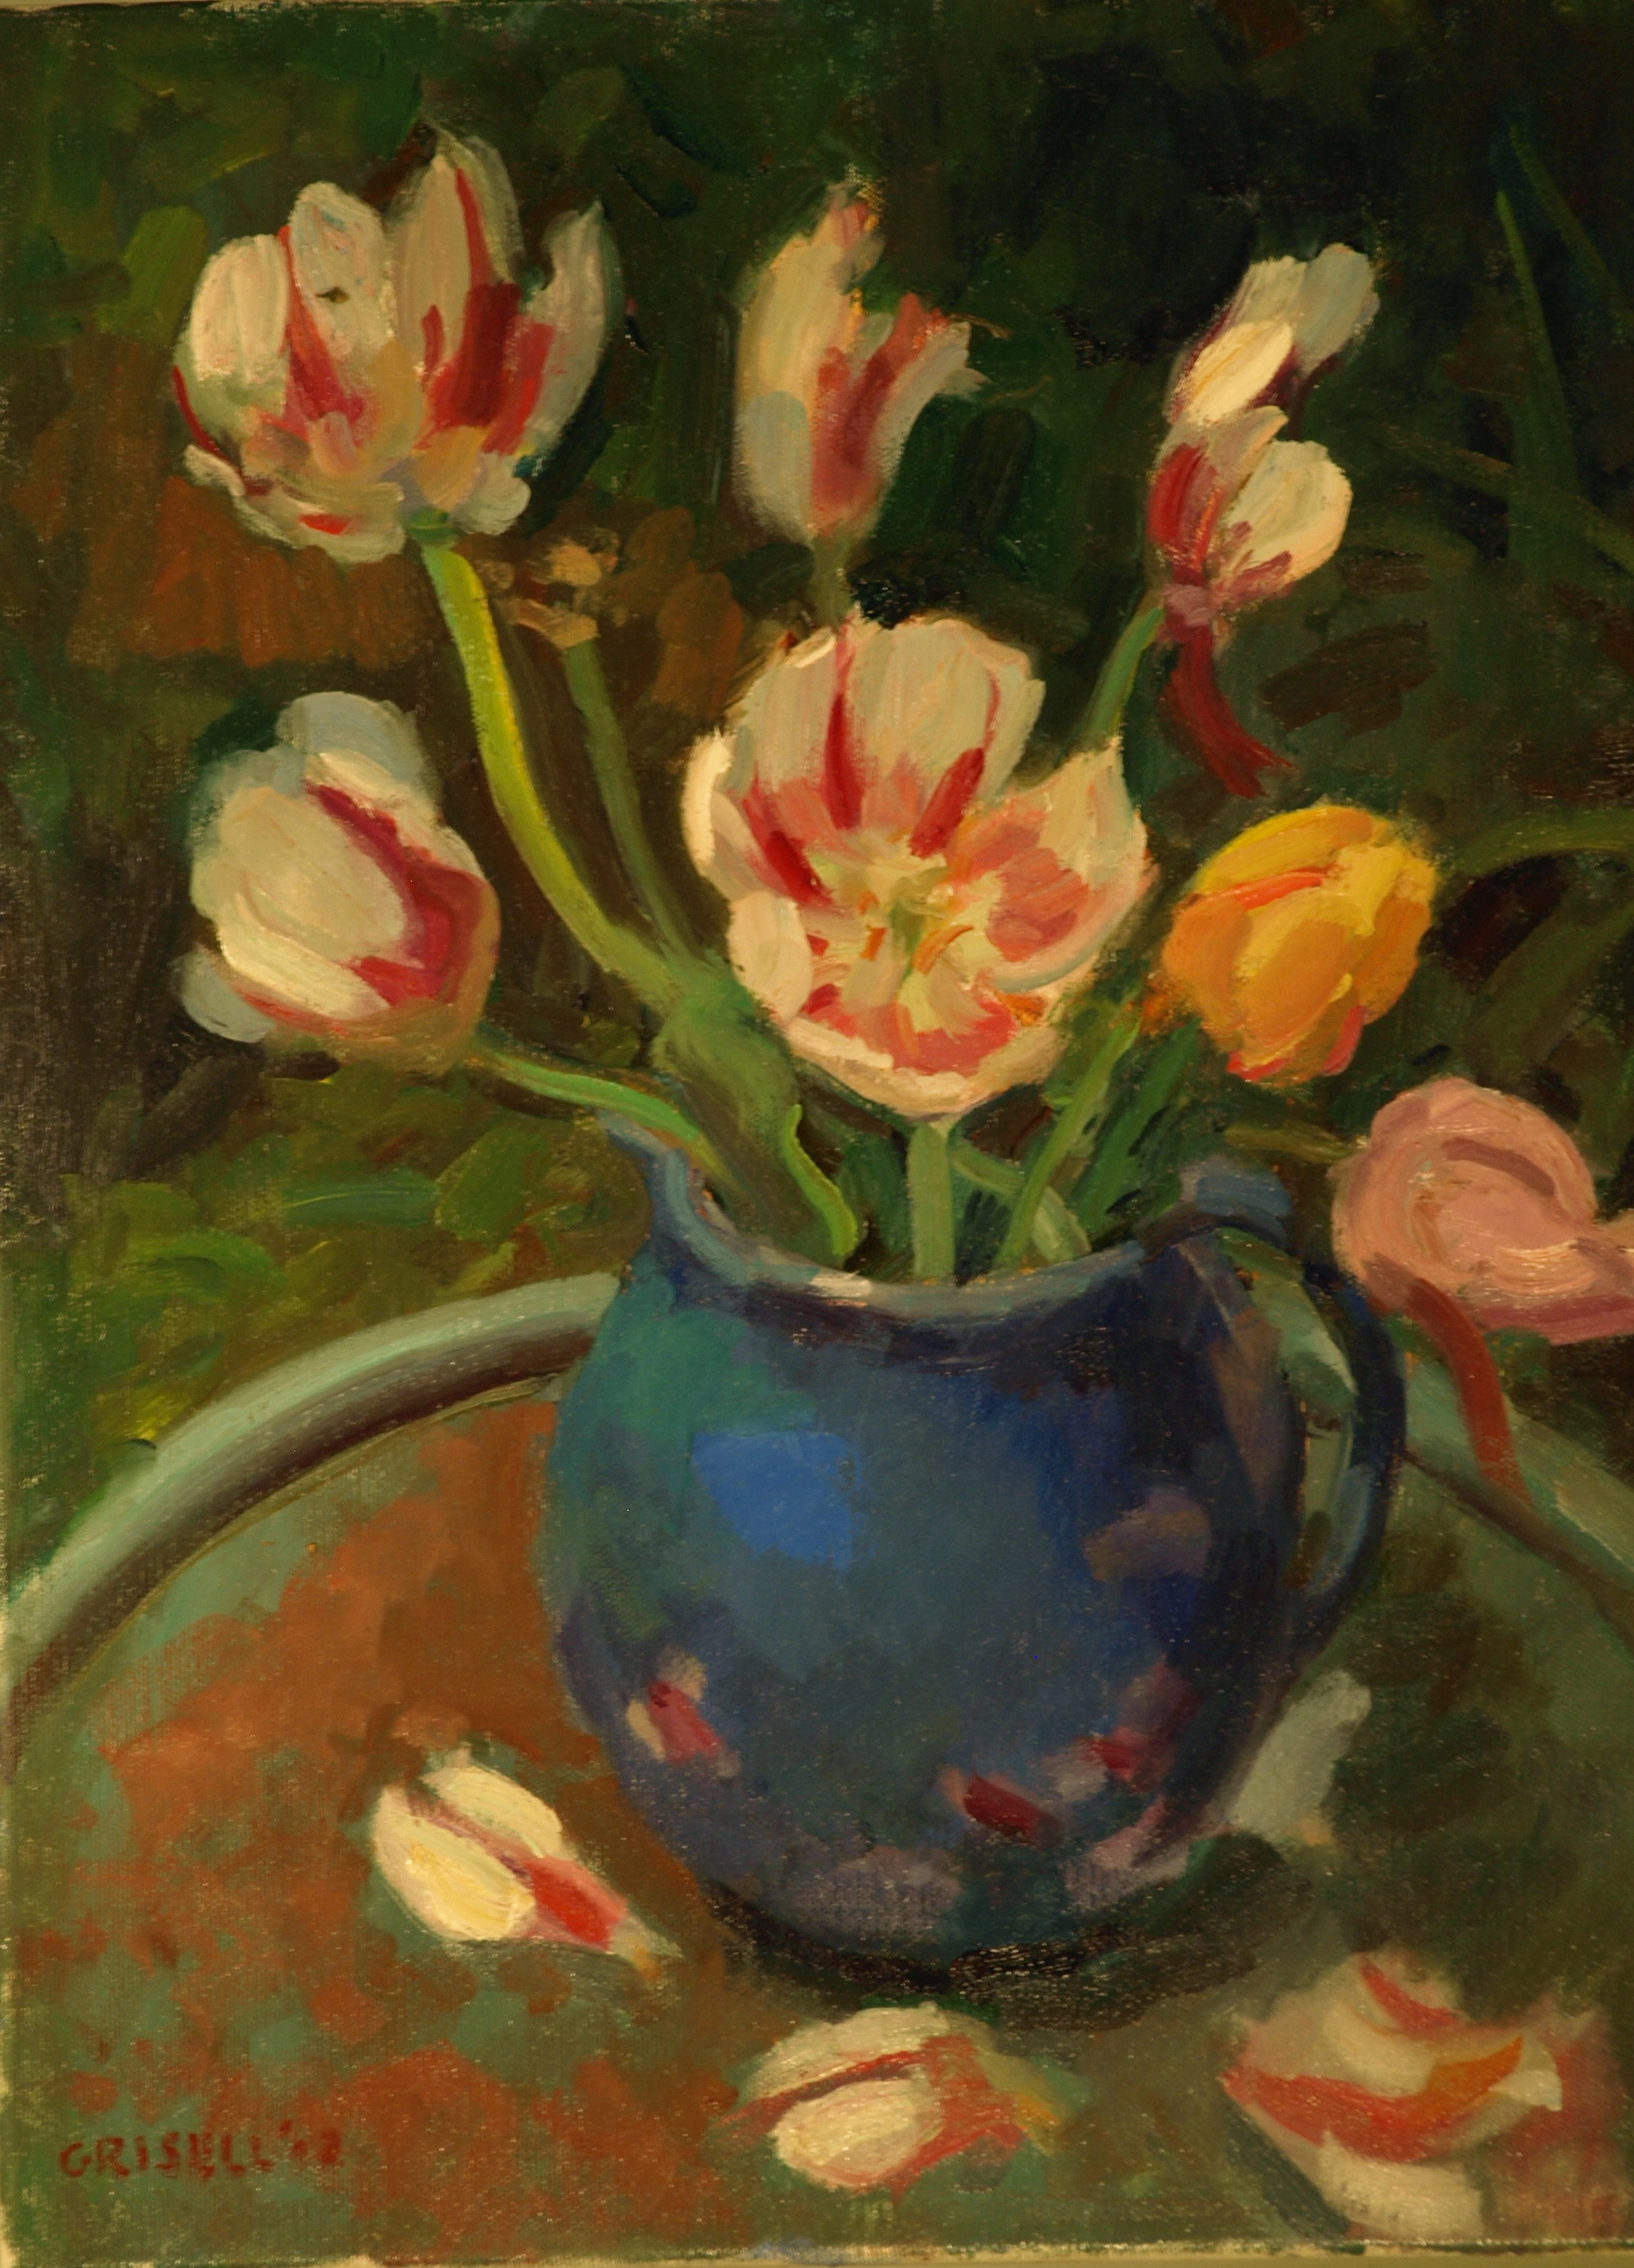 Fallen Petals, Oil on Canvas, 20 x 16 Inches, by Susan Grisell, $450